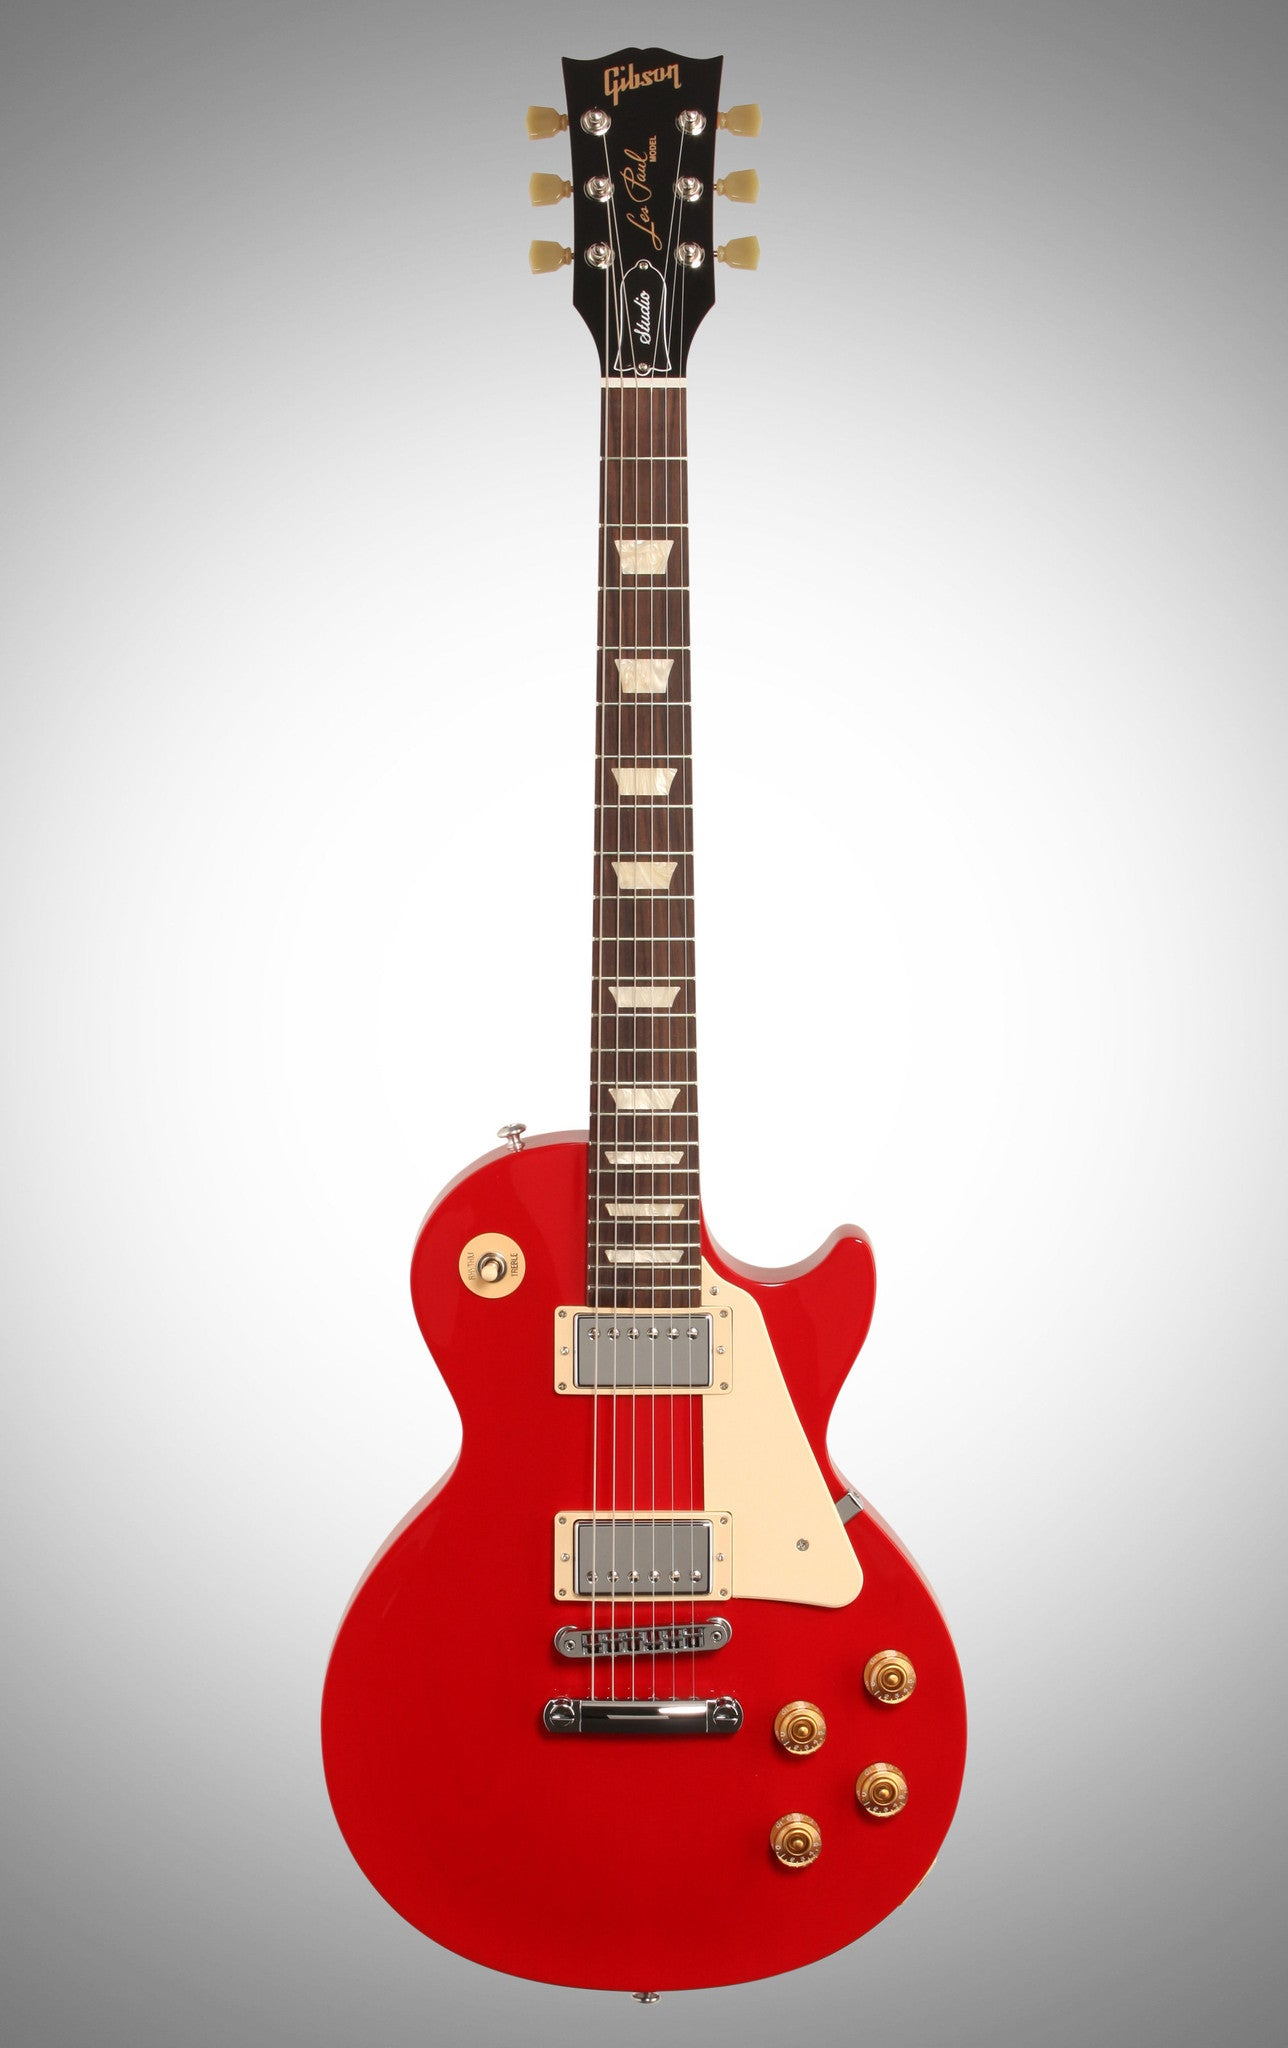 Gibson 2016 Les Paul Studio T Electric Guitar (with Case), Red Rocker Gibson - HIENDGUITAR.COM